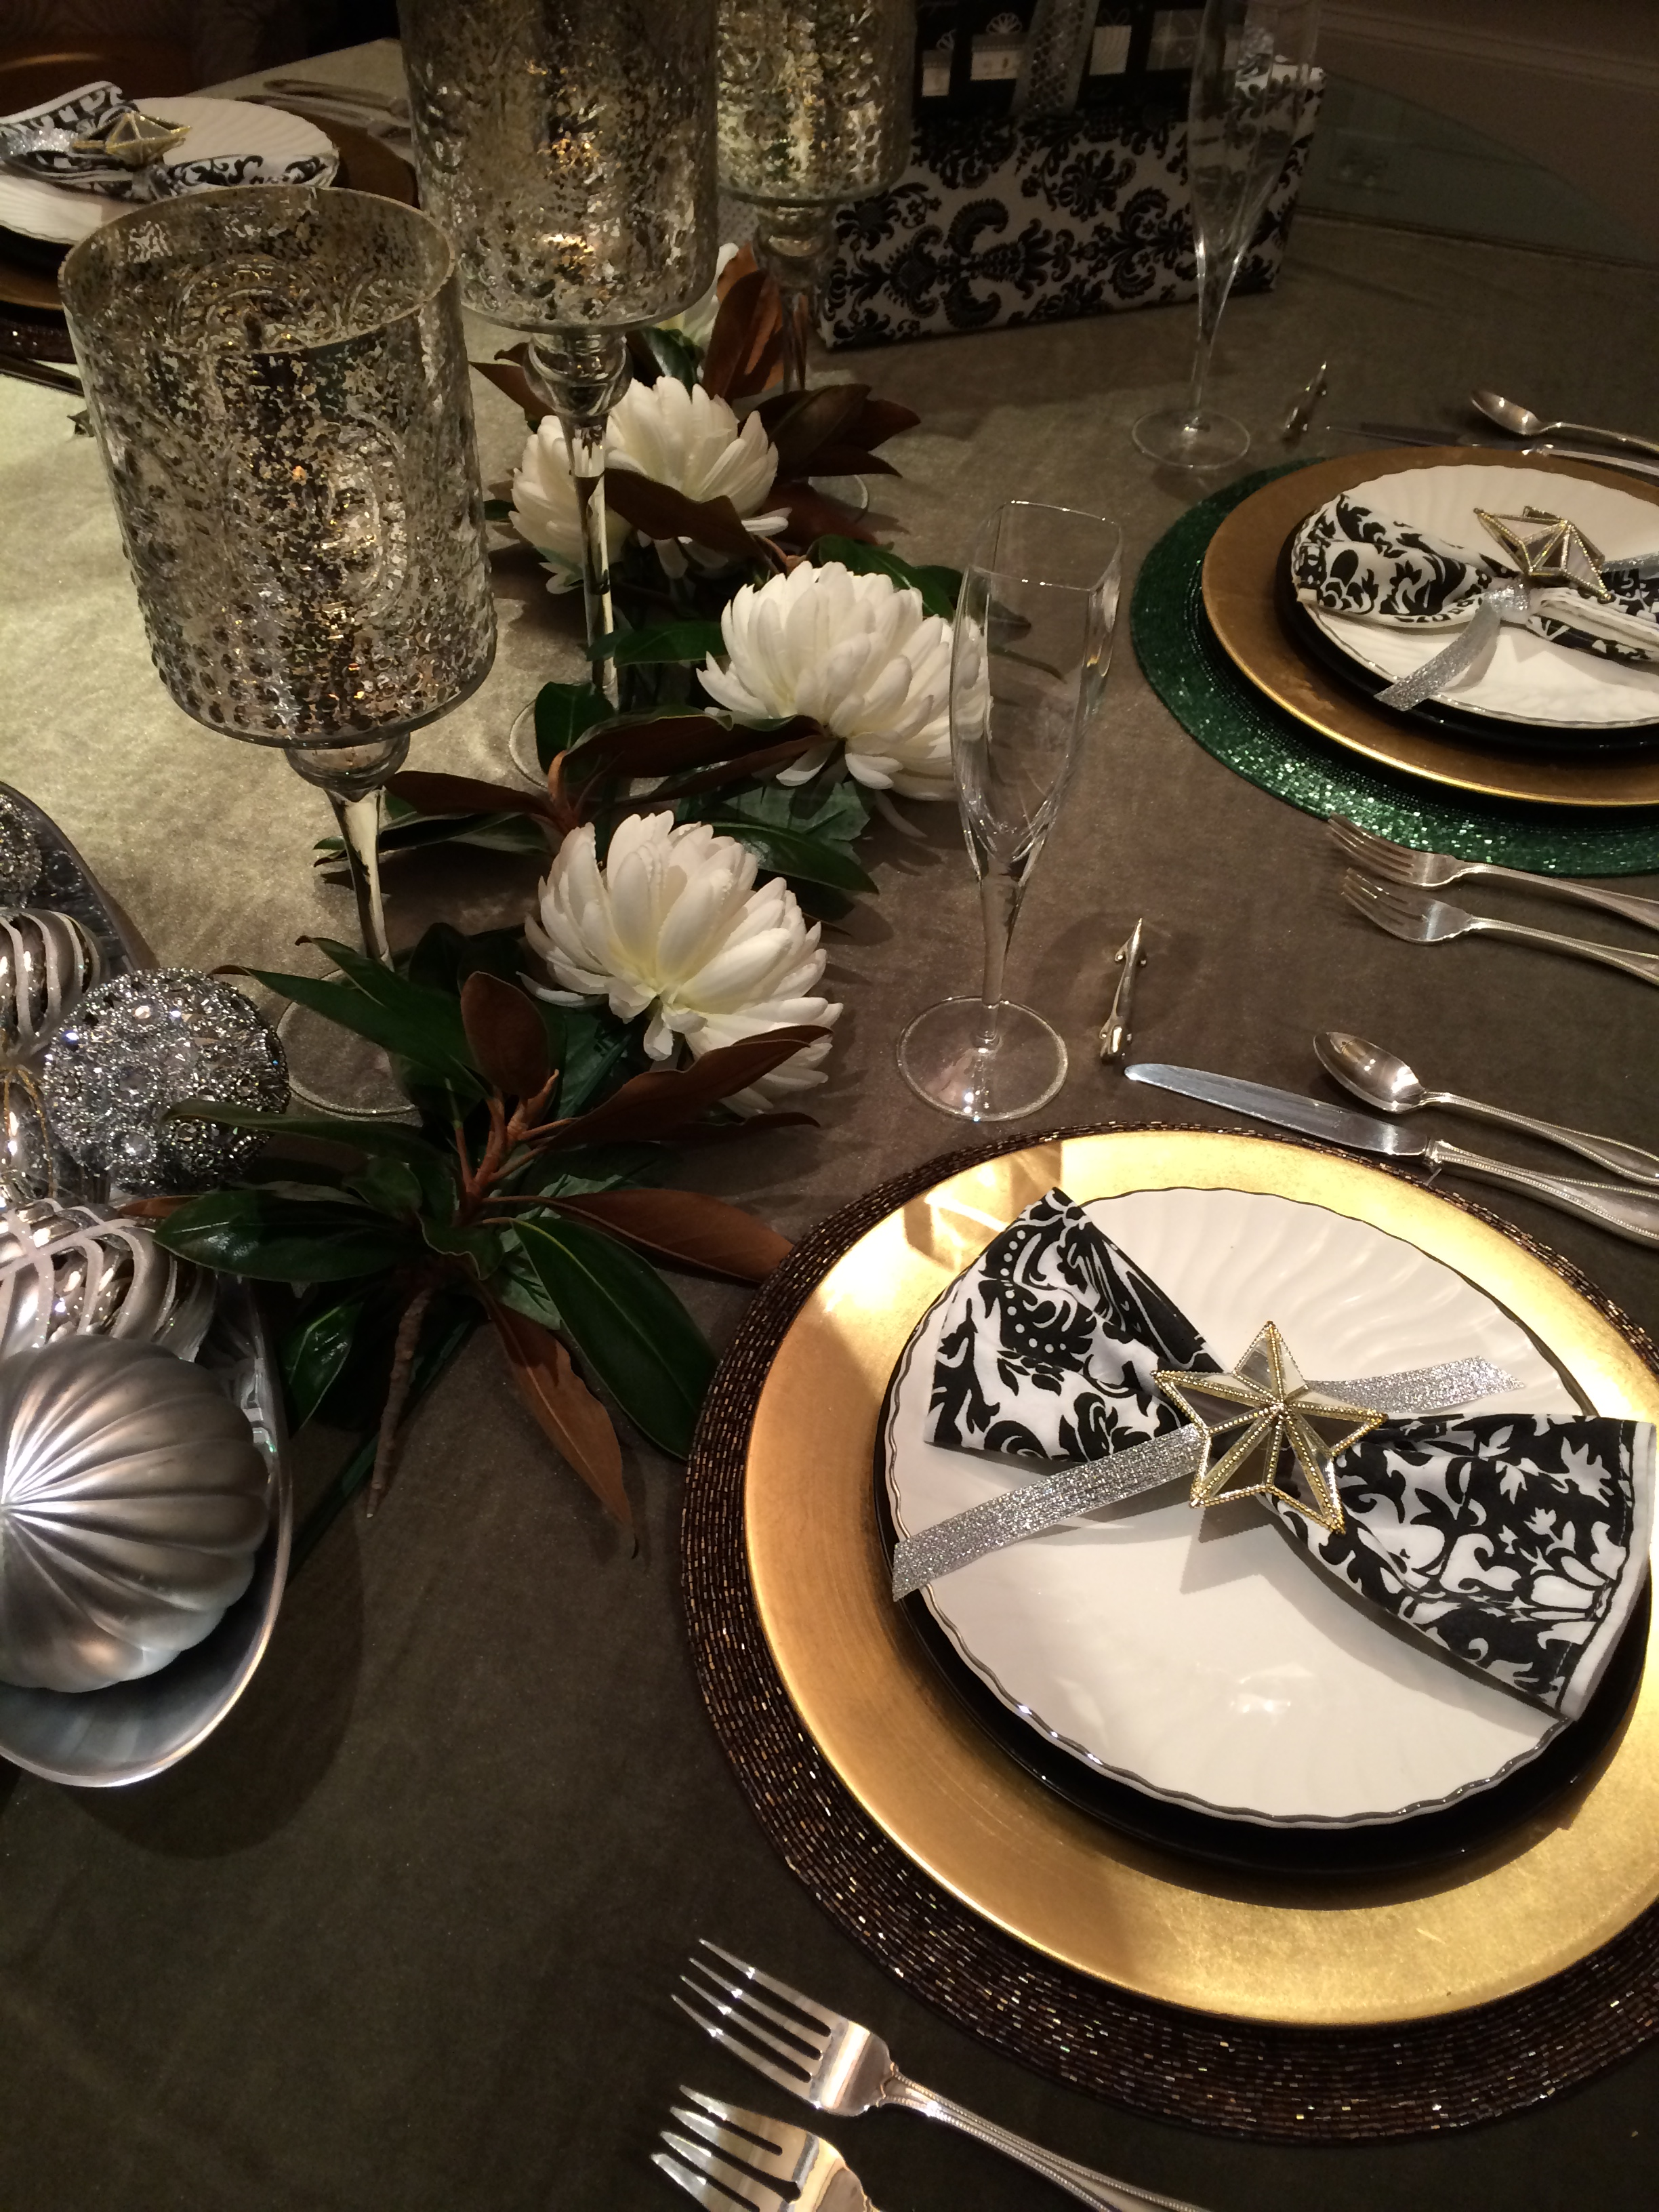 Simple Ideas To Dress Your Holiday Table & Make It Pretty